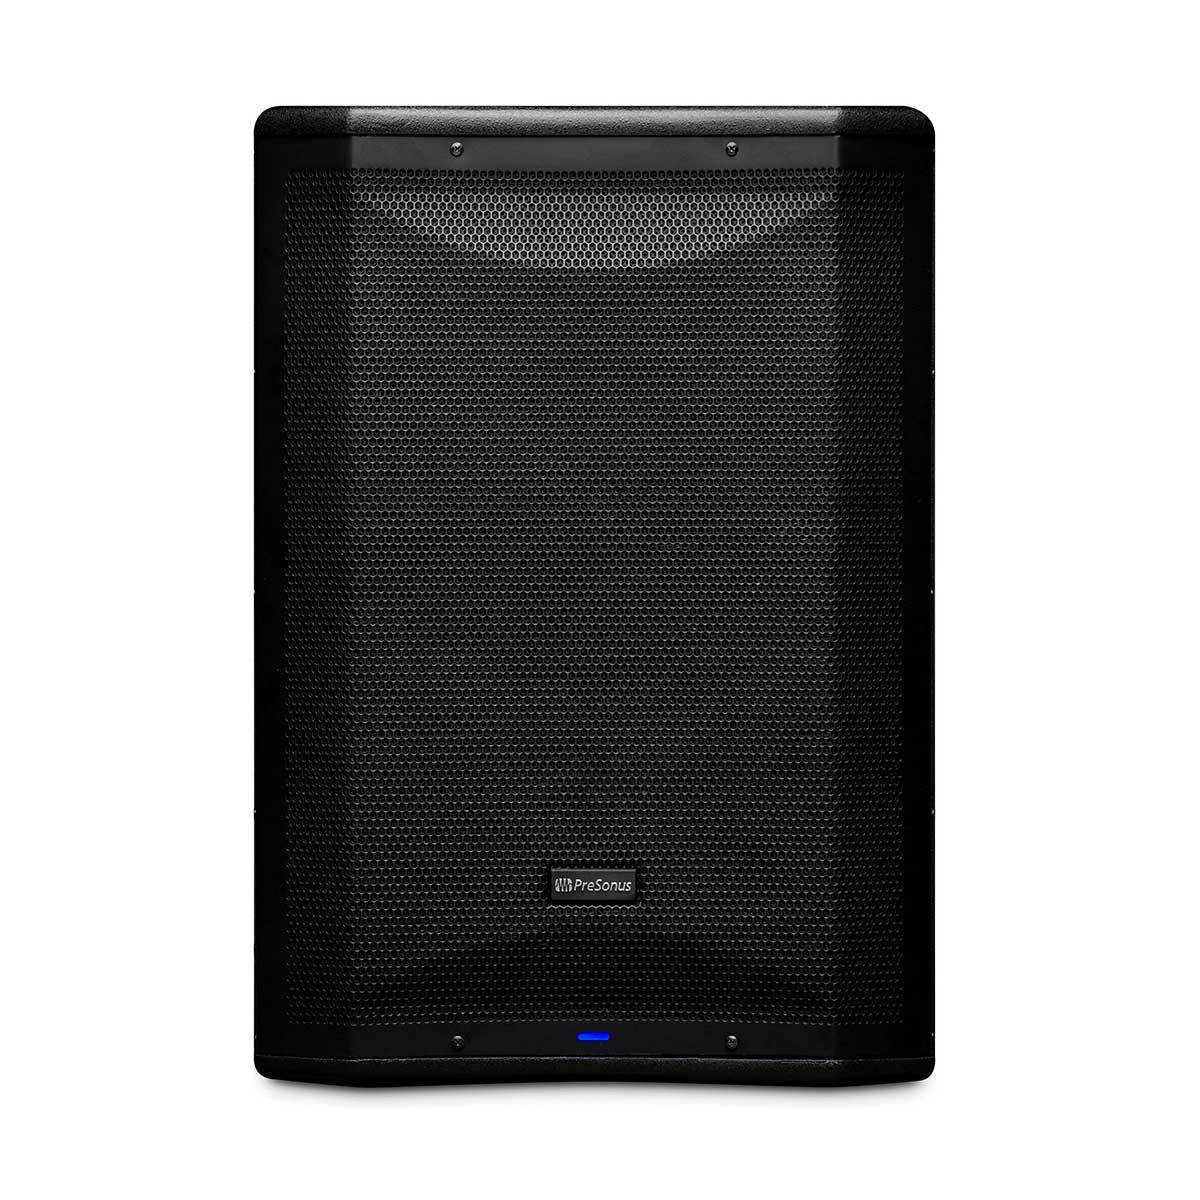 "PreSonus AIR15s 15"" Active Subwoofer"